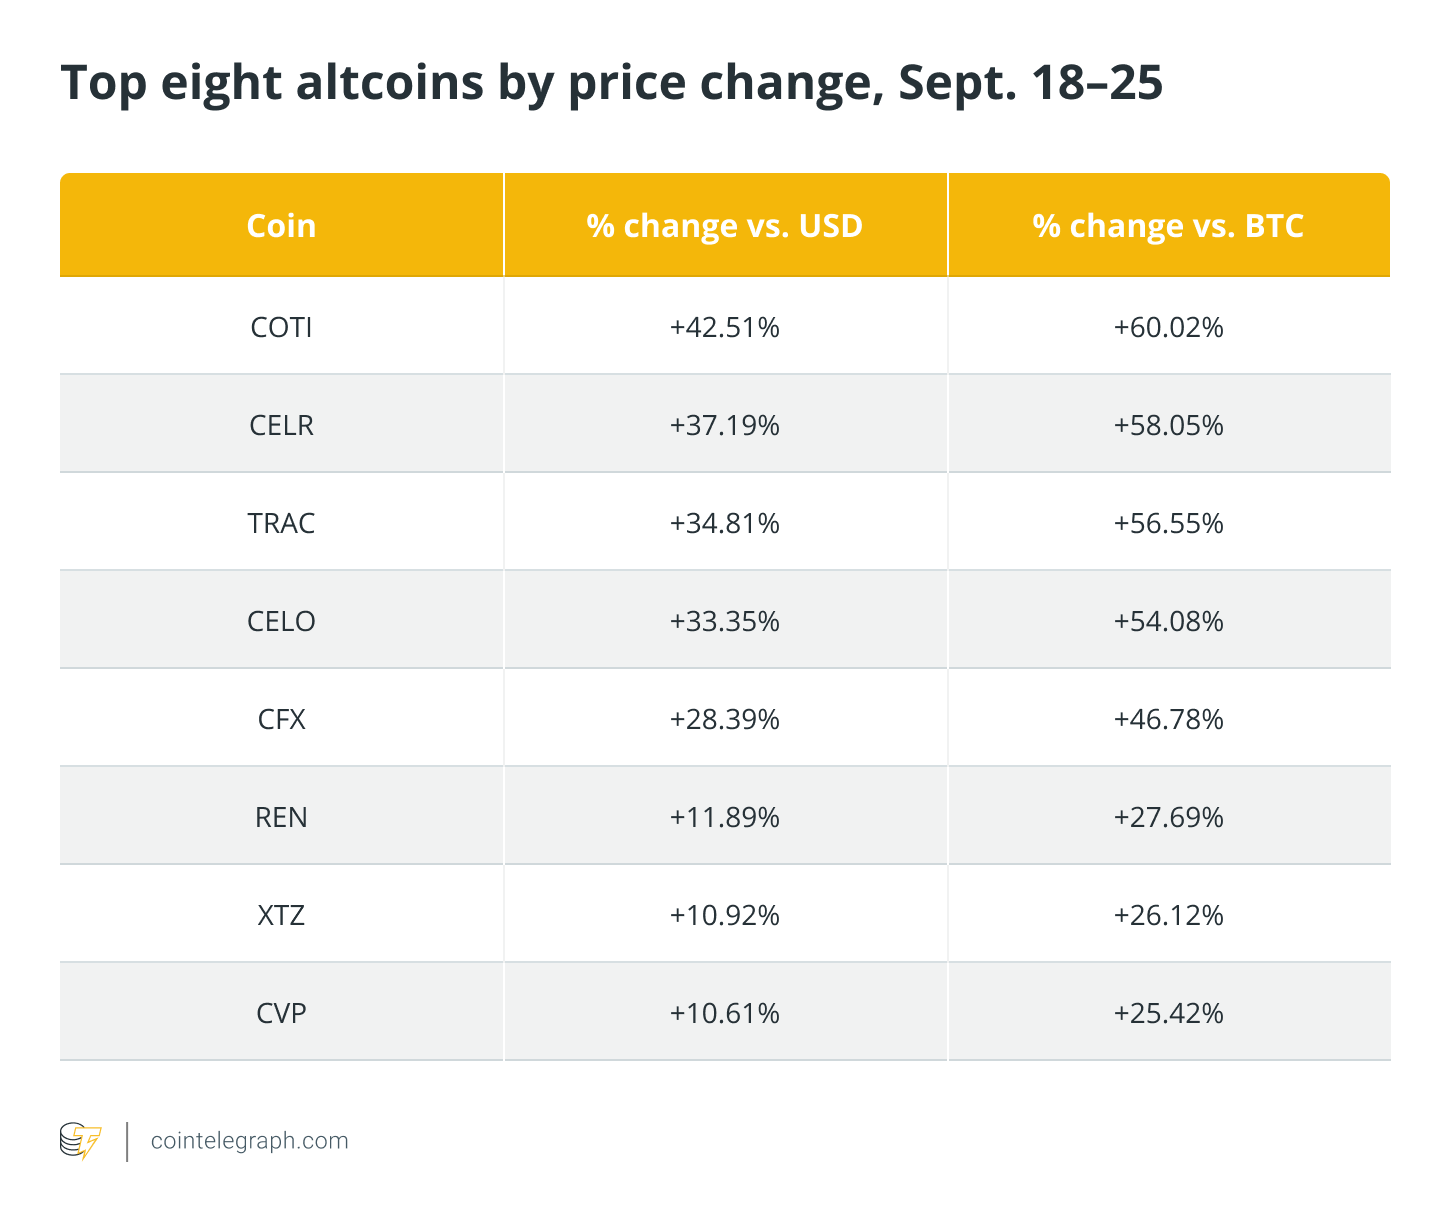 This key trading algo spotted bullish altcoin setups even as BTC price fell